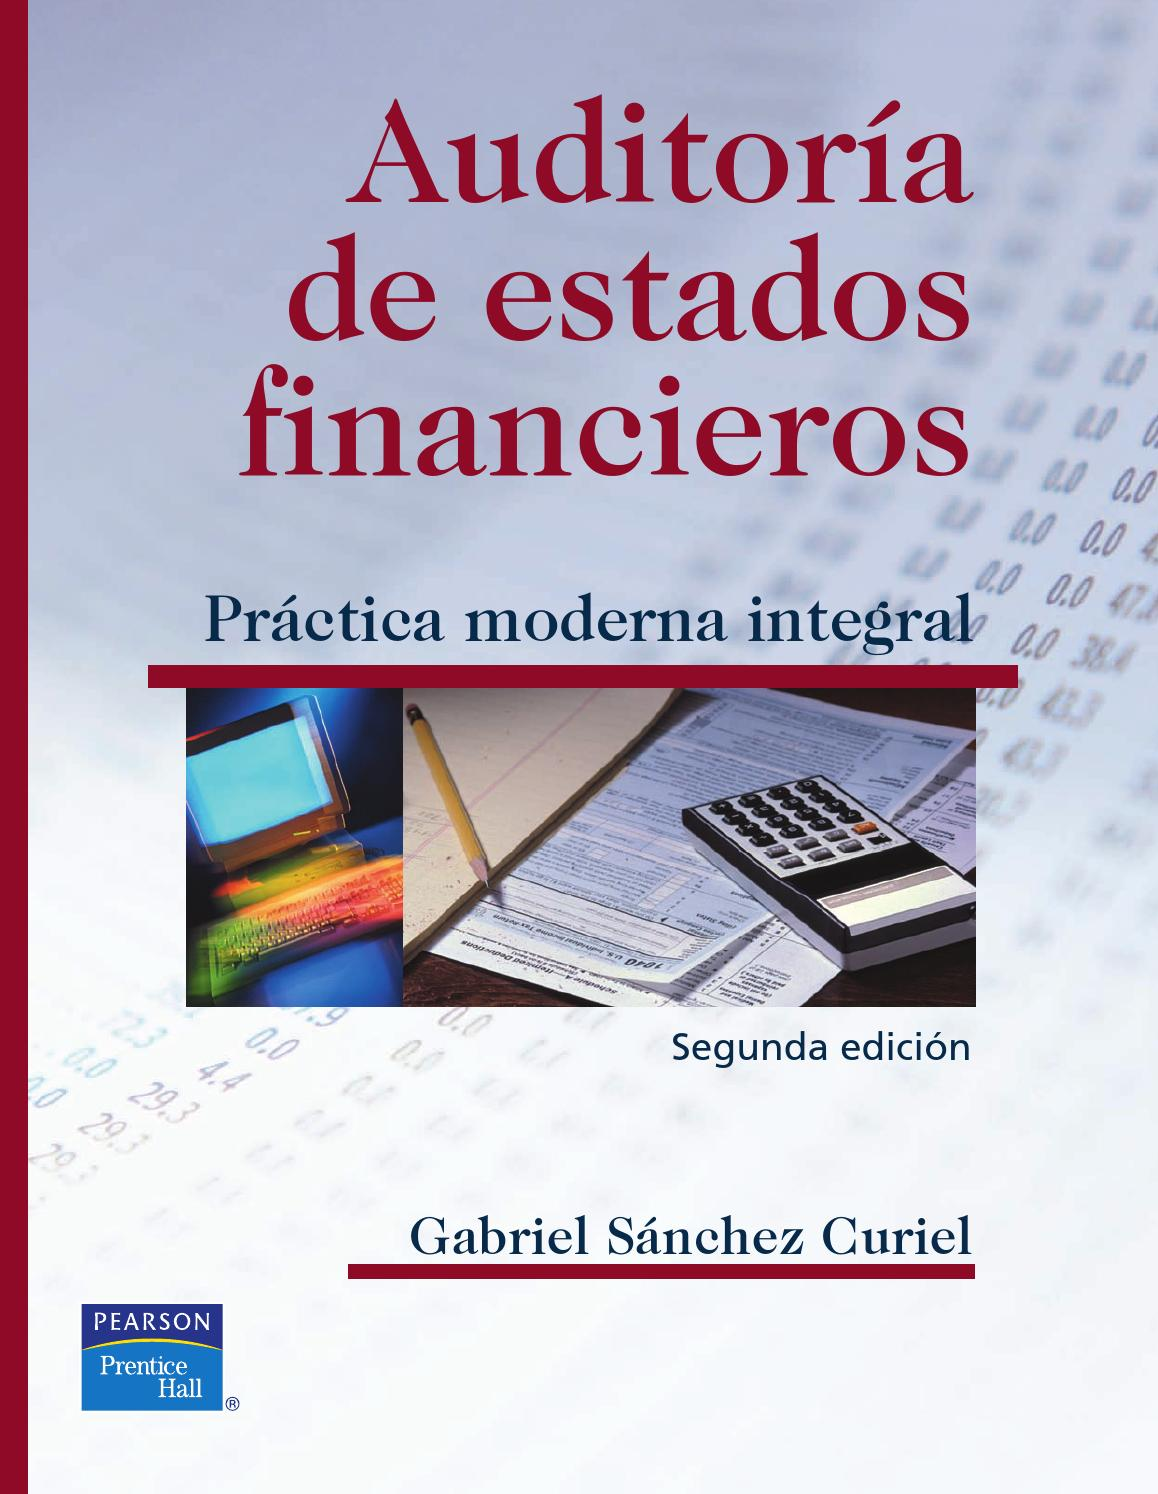 Auditoria Practica De Estados Financieros - Requisitos Prestamos Mi Vivienda @tataya.com.mx 2020